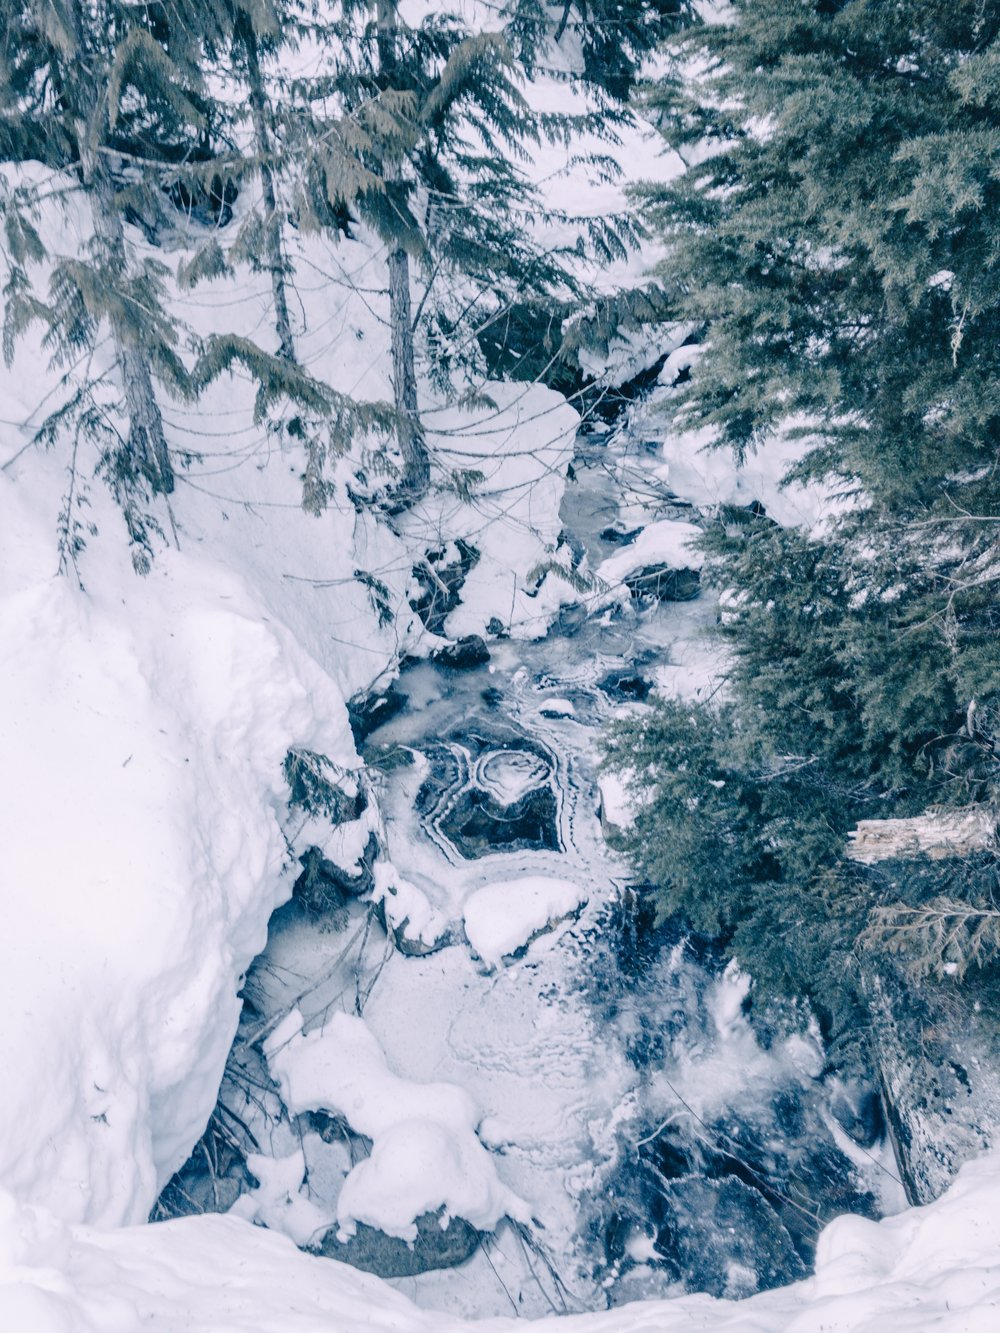 Snowshoe hike in Whistler forest